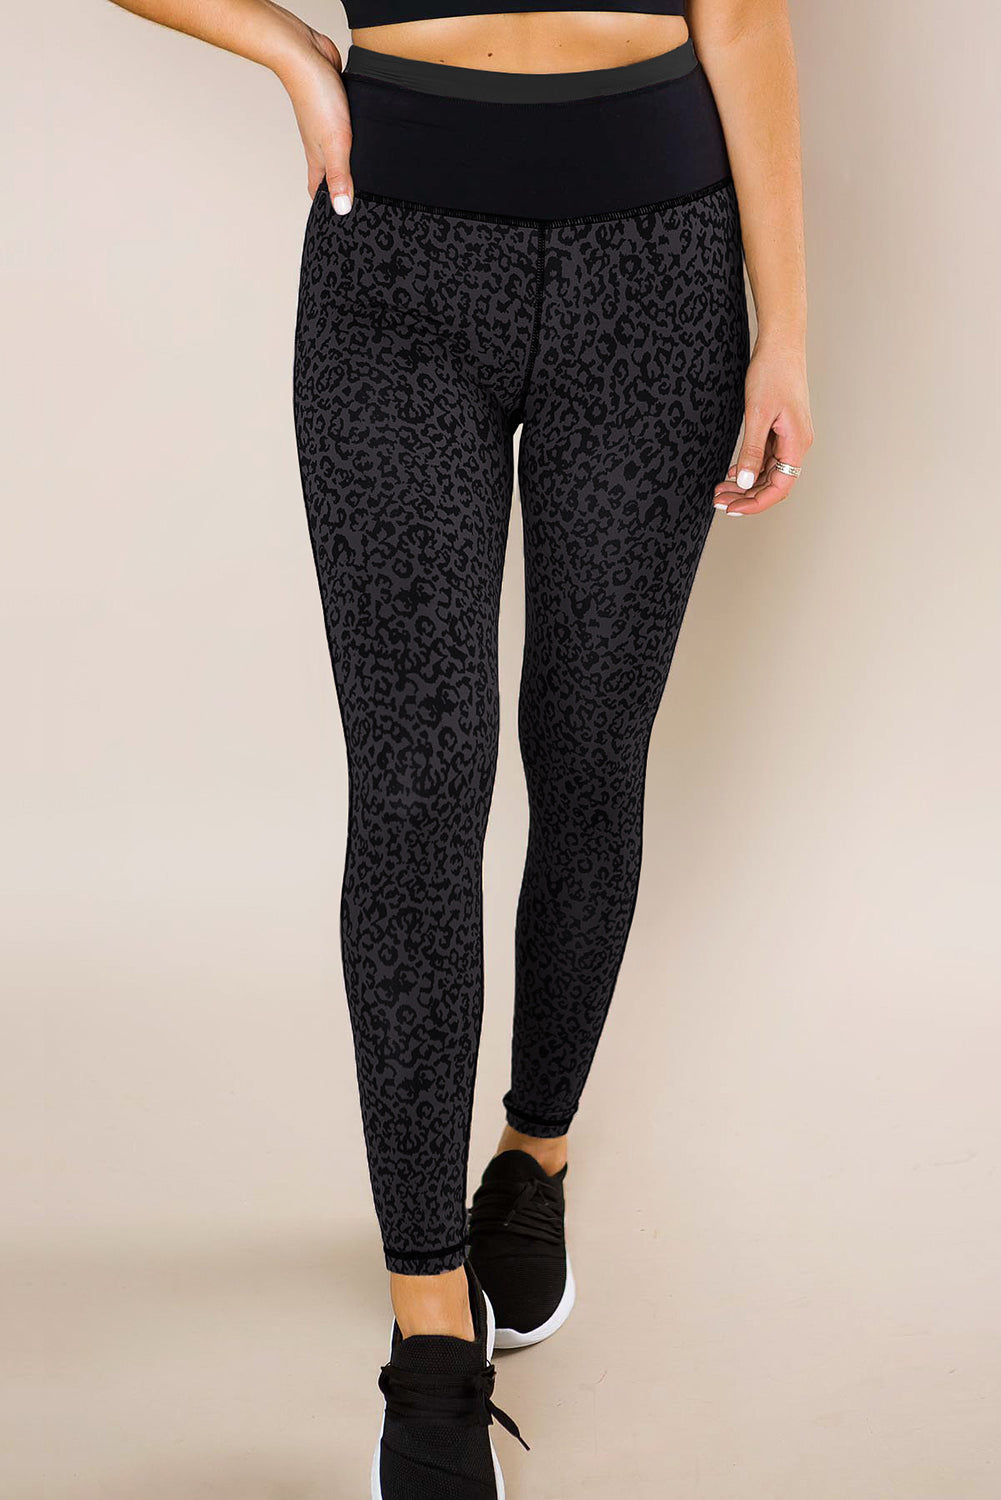 Black Leopard Print Active Leggings